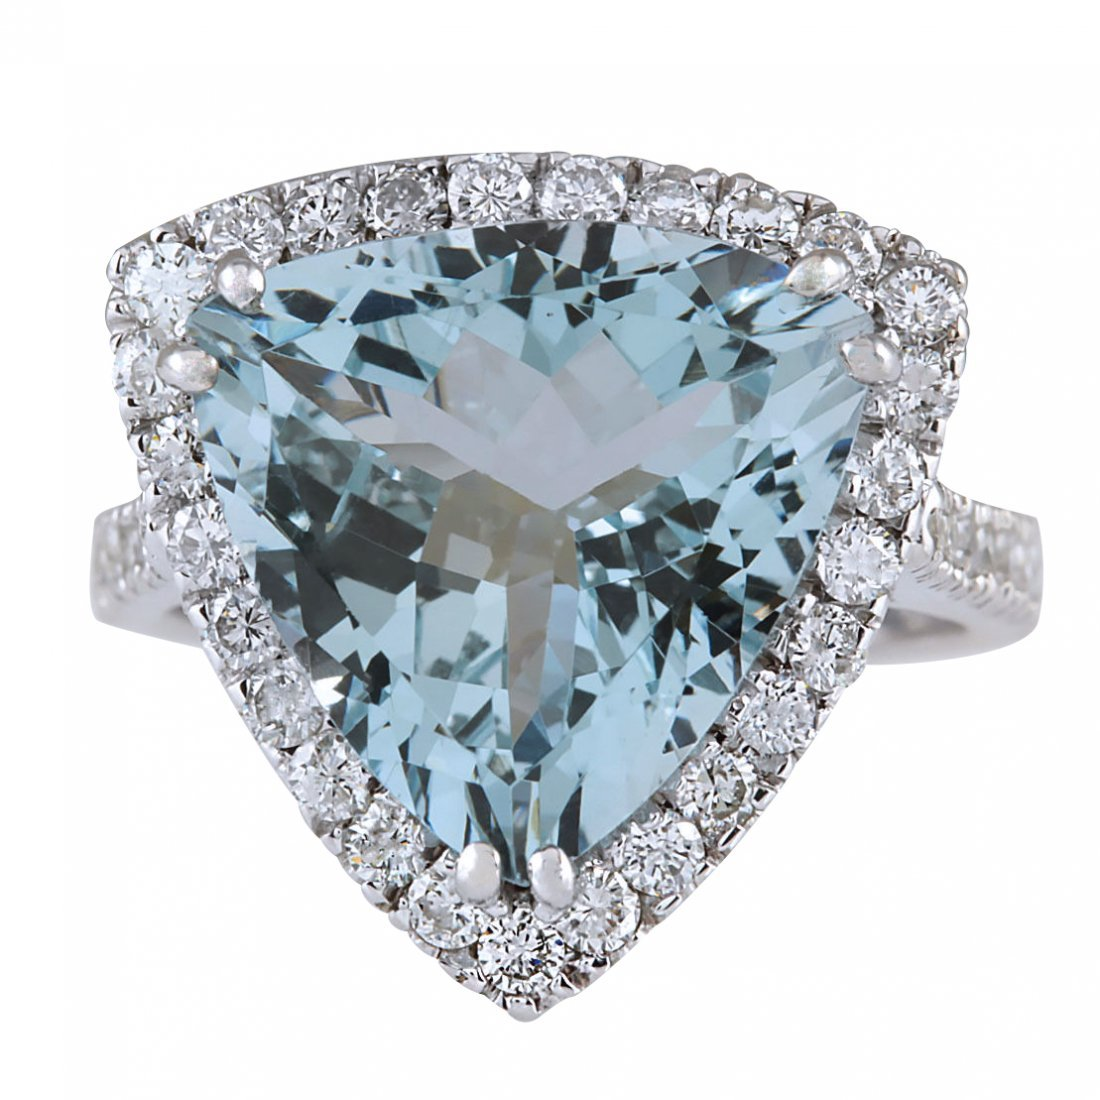 8.96CTW Natural Aquamarine And Diamond Ring In 14K